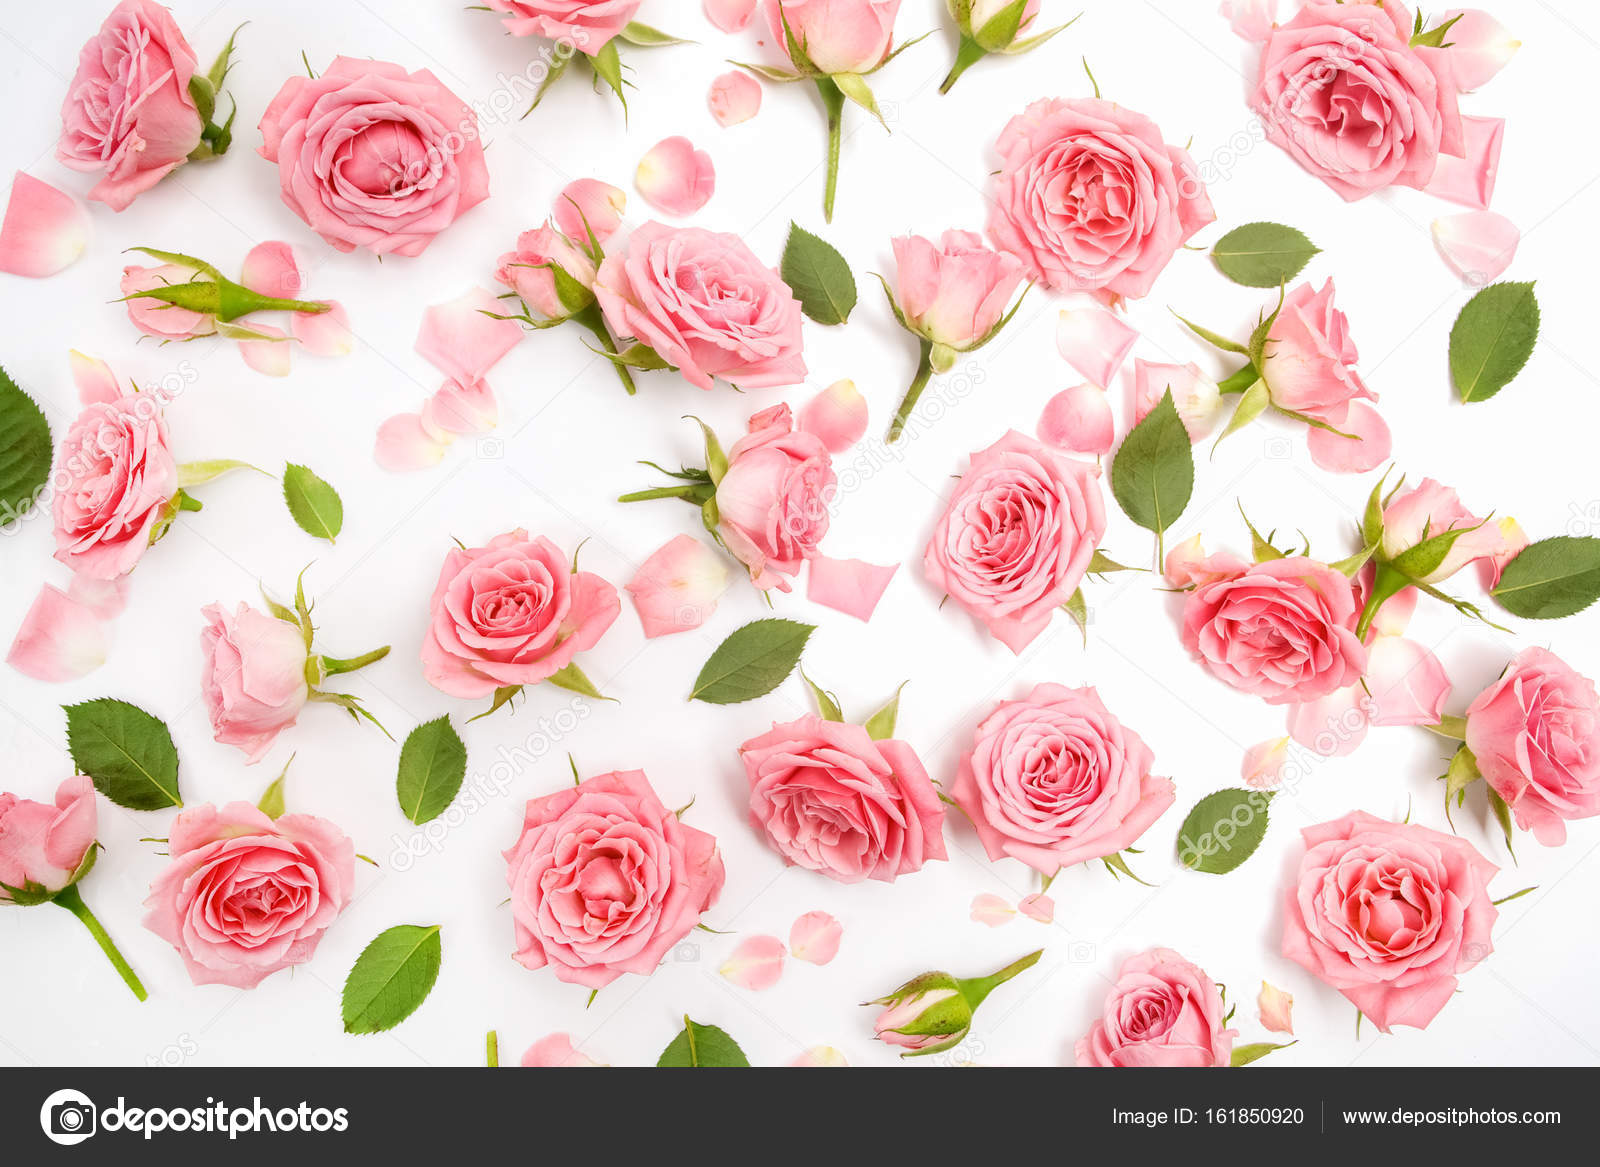 Floral Pattern Made Of Pink Roses Green Leaves Branches On White